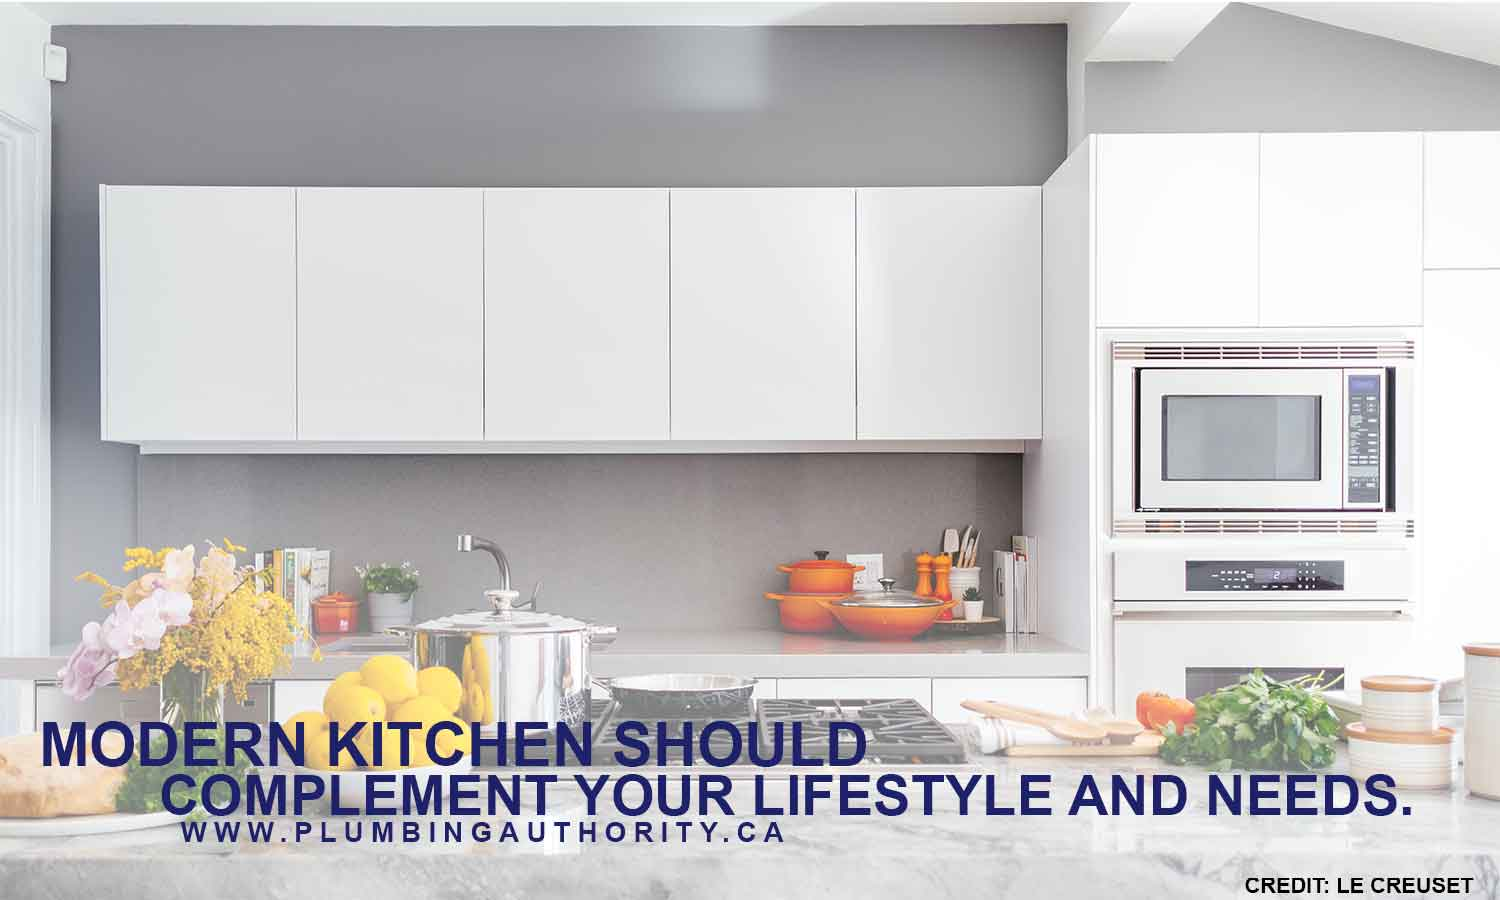 Modern kitchen should complement your lifestyle and needs.